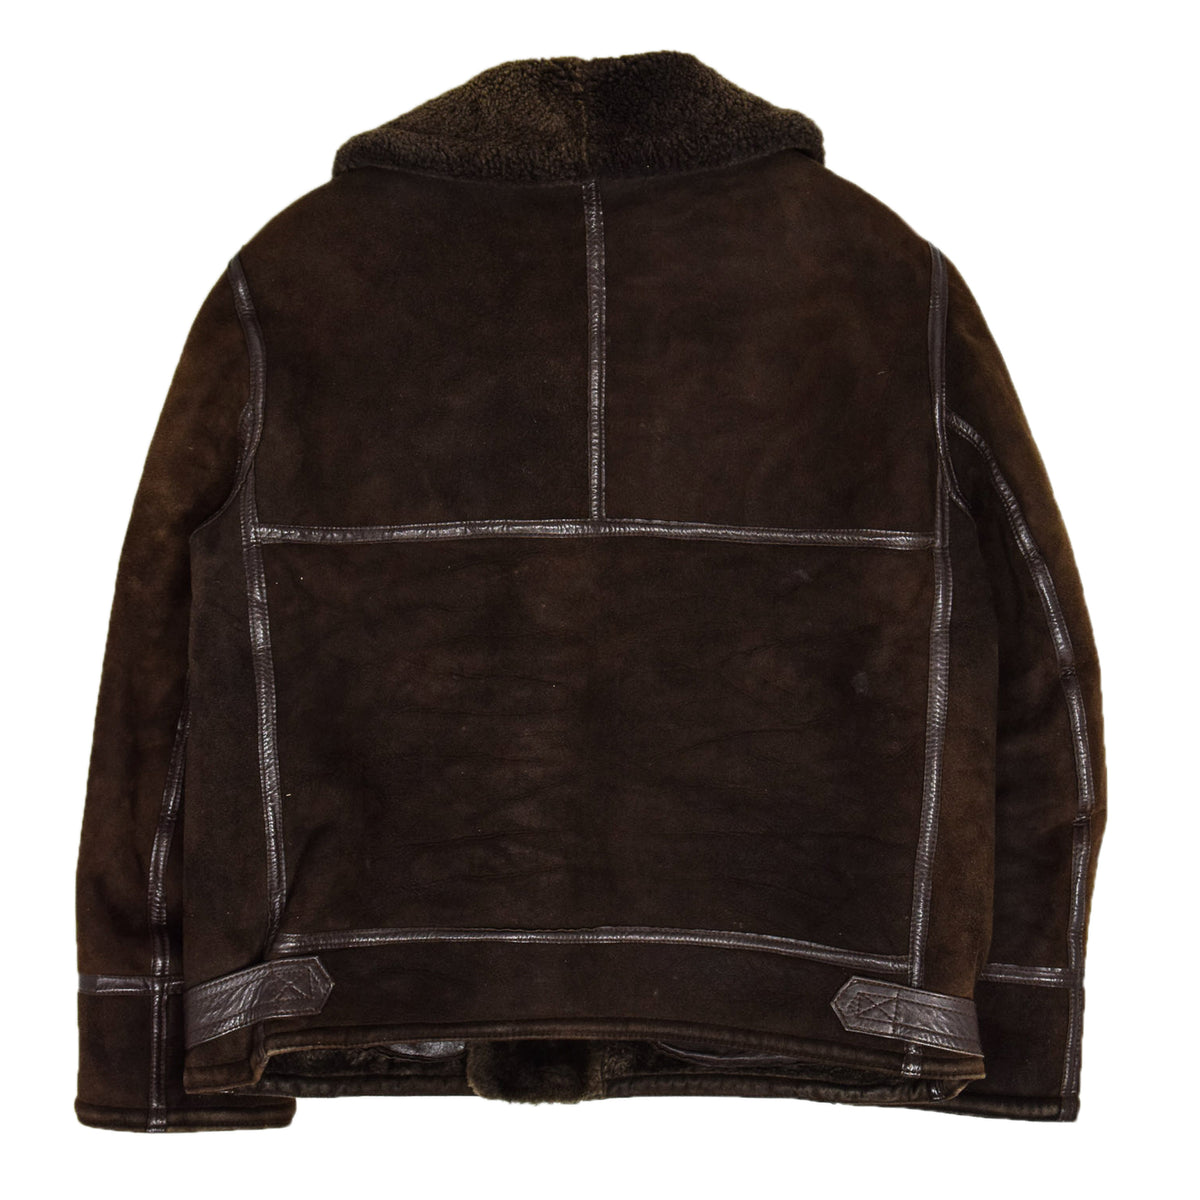 Vintage Huc Of Sweden B3 Style Shearling Sheepskin Bomber Jacket Brown L back